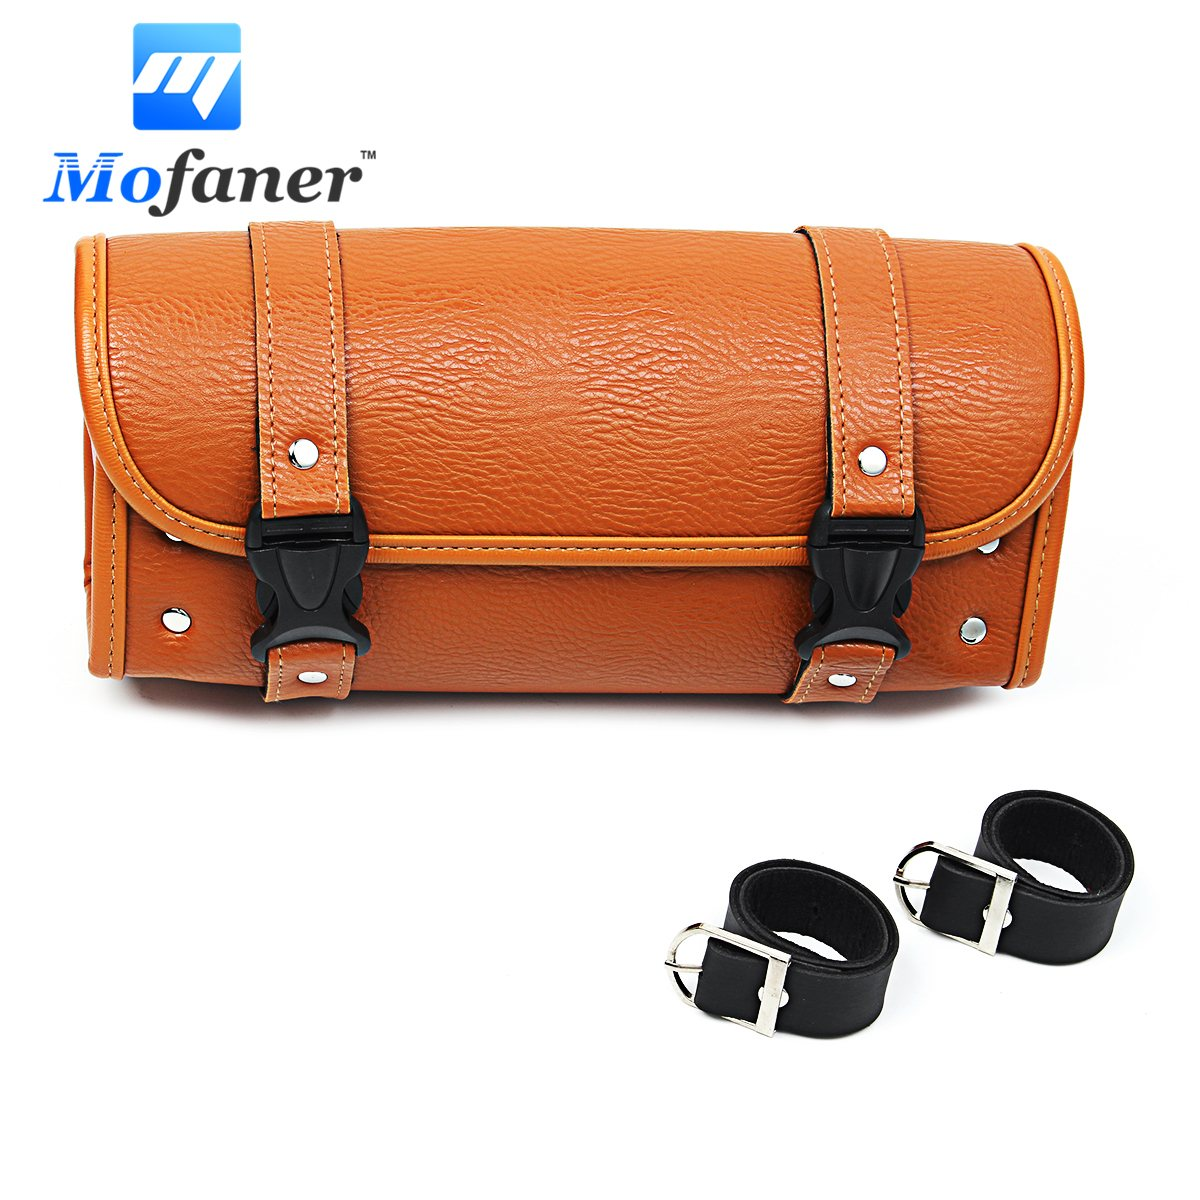 Mofaner Retro Motorcycle Saddlebag PU Leather Motorcycle Barrel Saddlebags Storage Tool Bags Pouch For Harley-Davidson